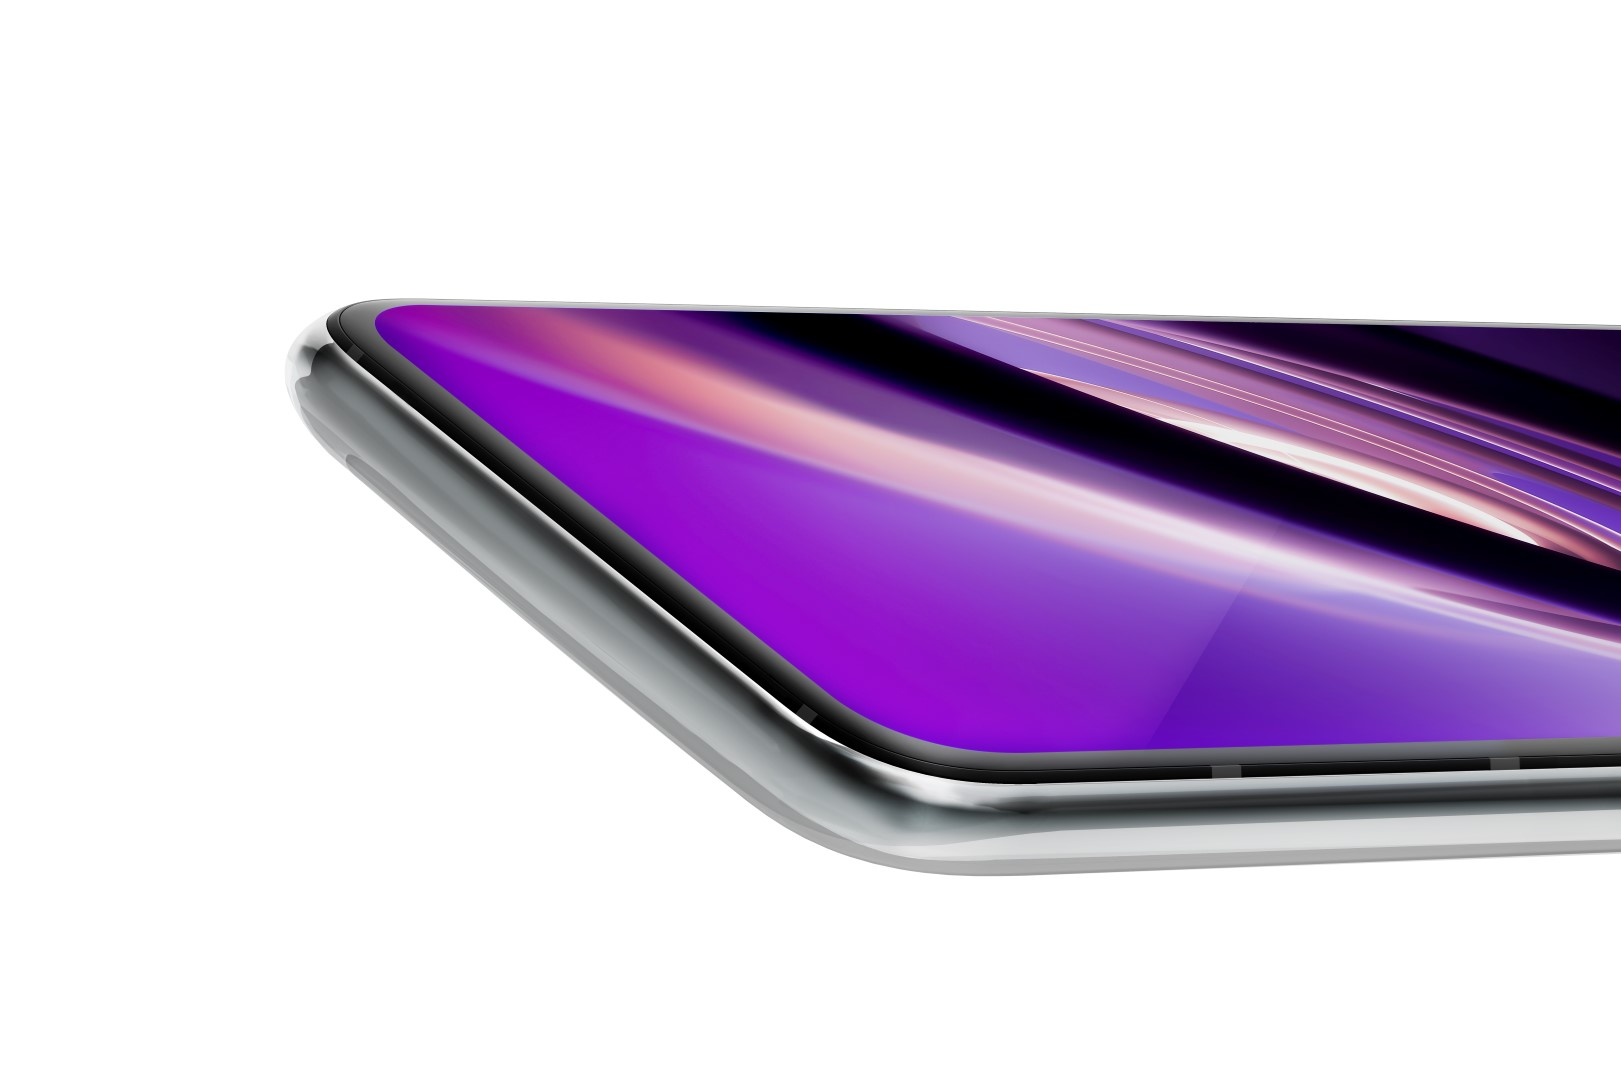 Vivo's new concept phone doesn't have a screen notch or a